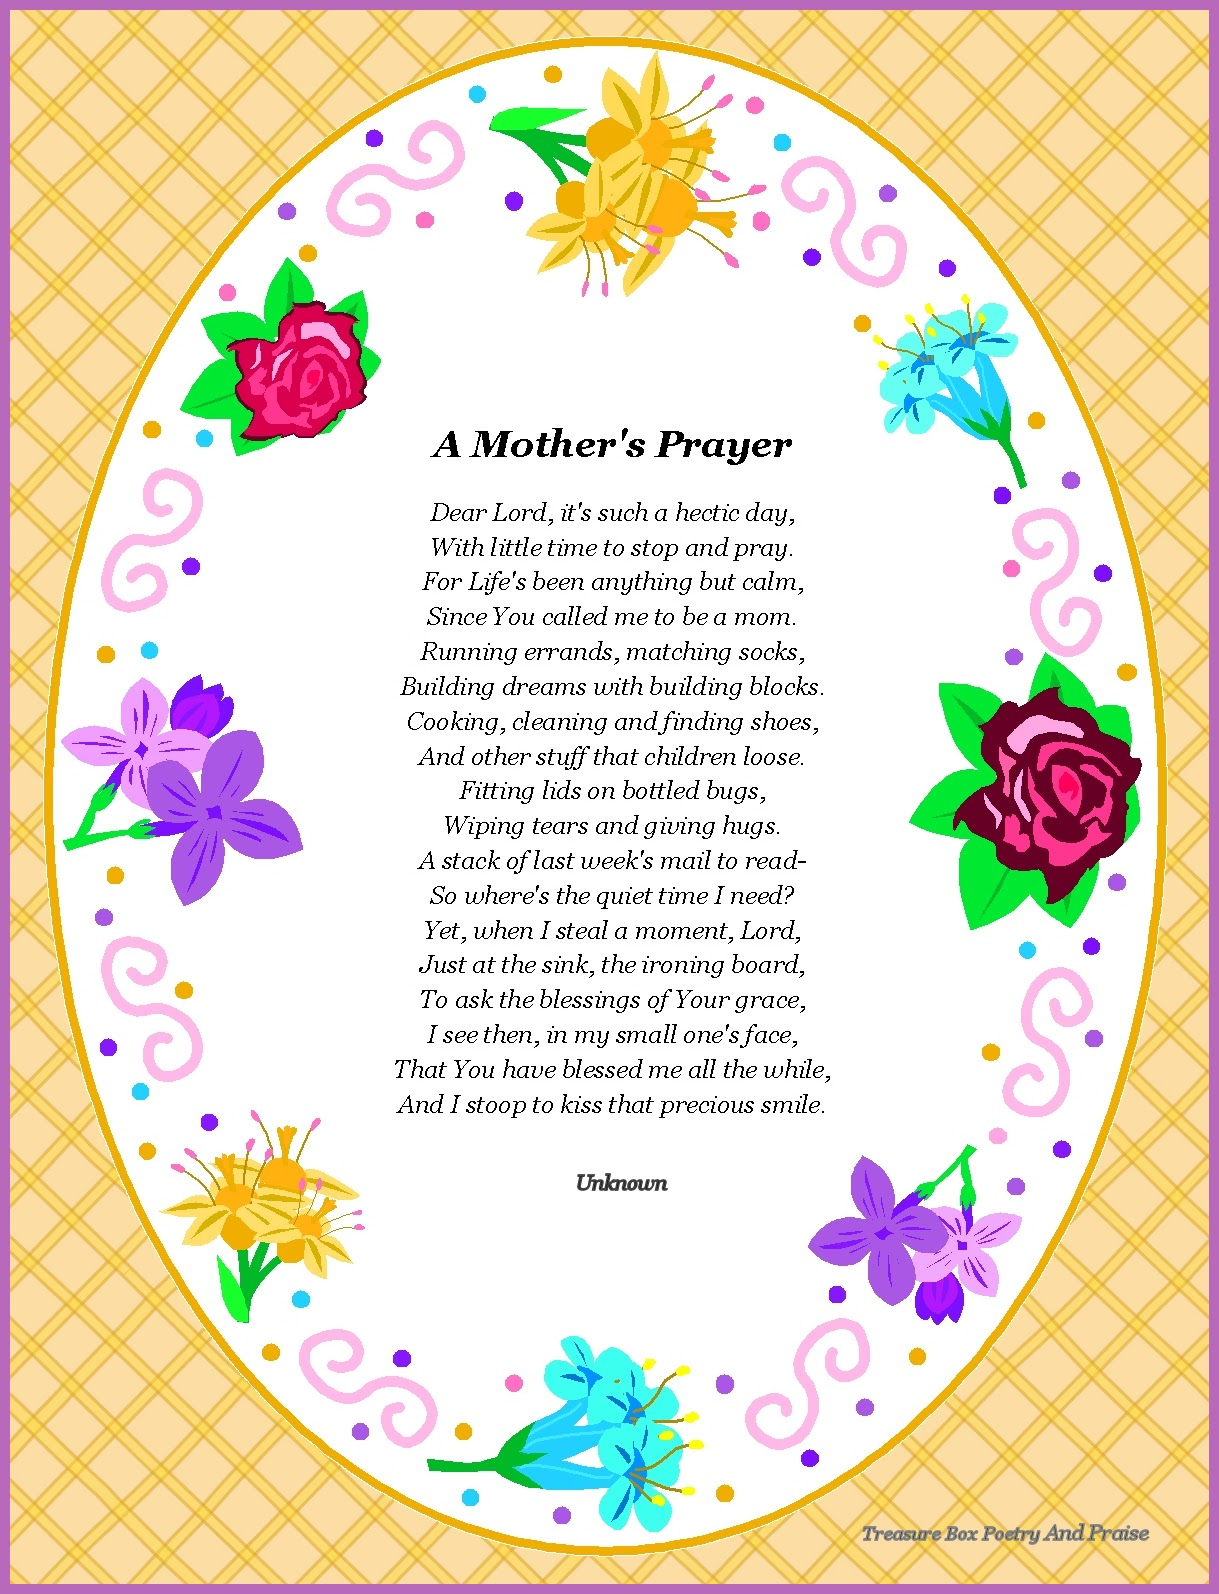 Missing Mother Poem http://singanewsongpoetry.blogspot.com/2012/03/mothers-prayer-poem-poster.html